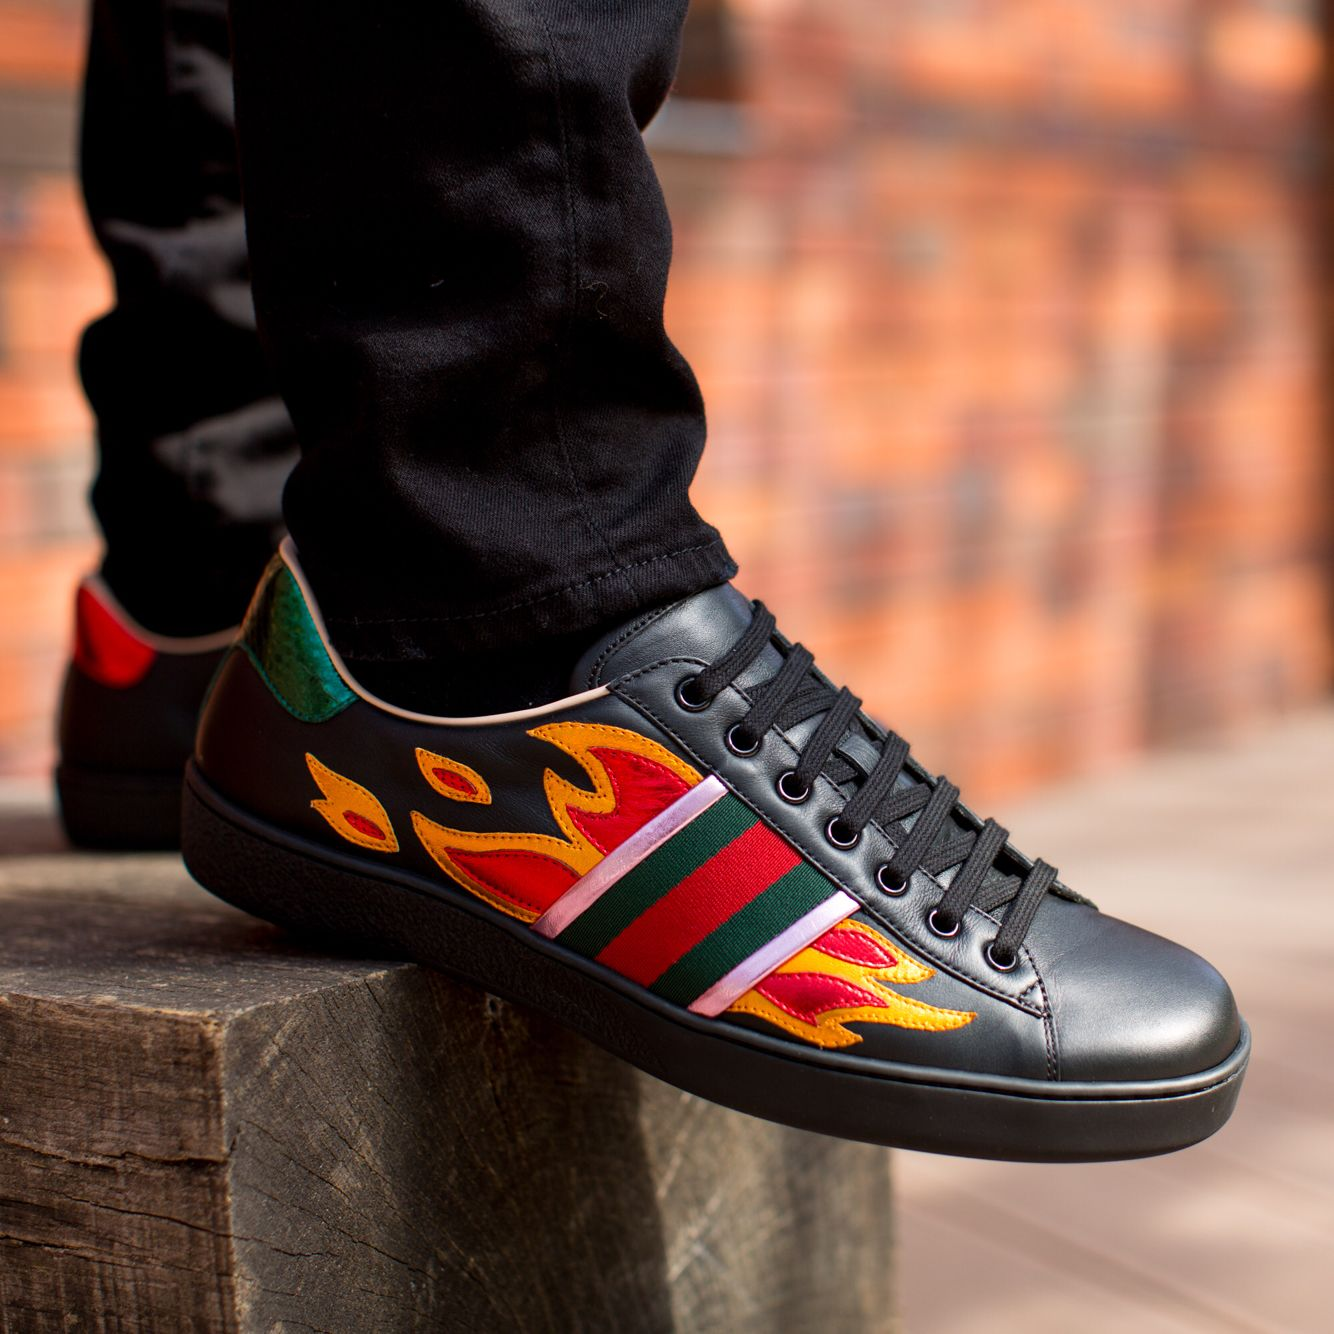 Sneakers fashion, Gucci ace sneakers